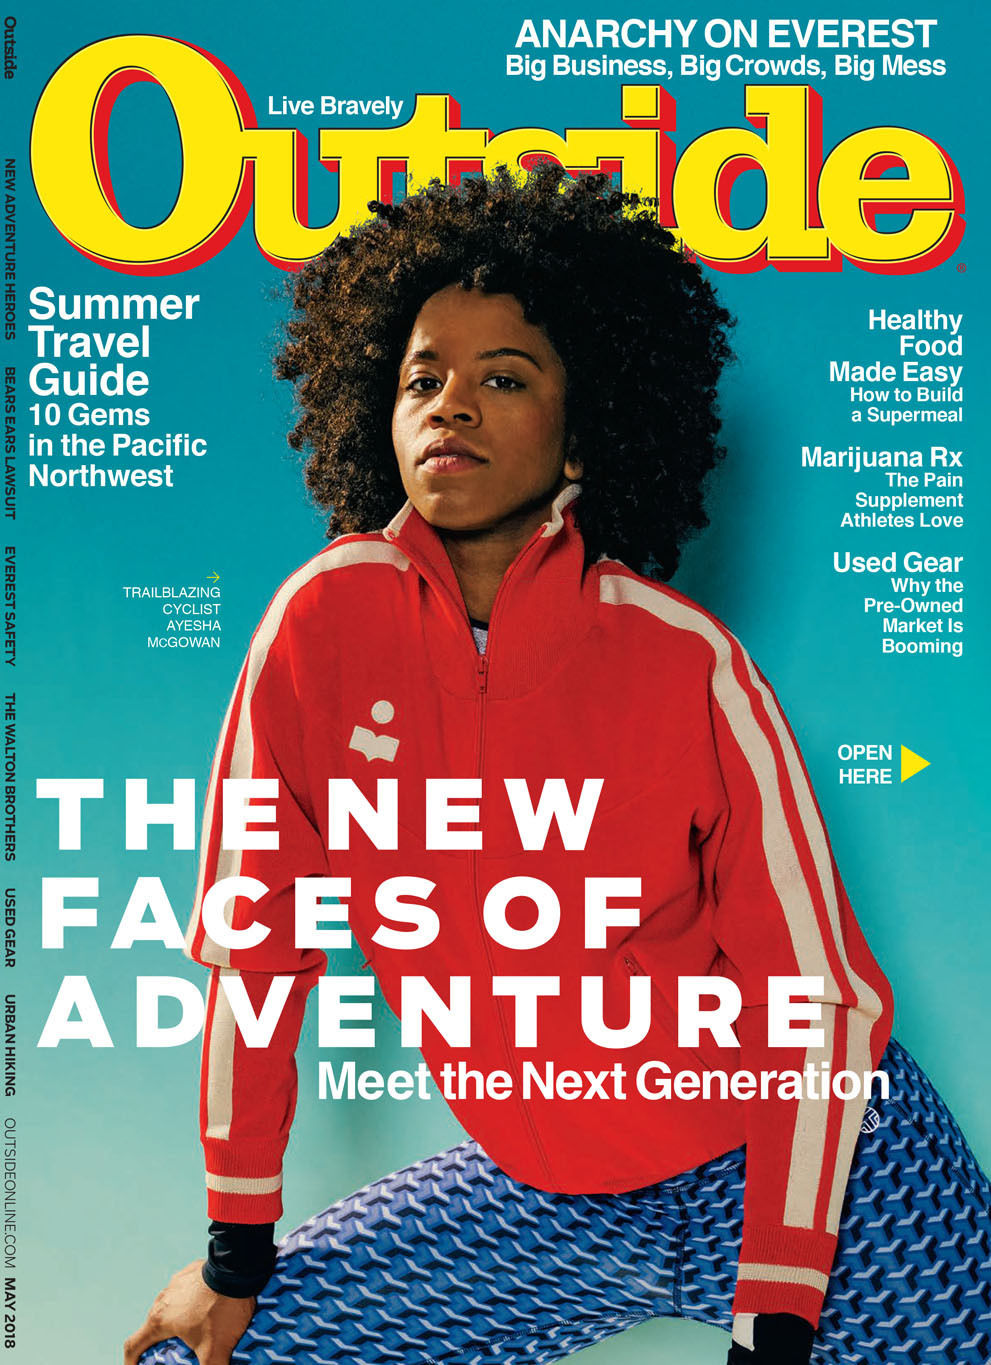 João Canziani c/o GIANT ARTISTS João Canziani photographed the New Faces of Adventure cover for Outside Magazine